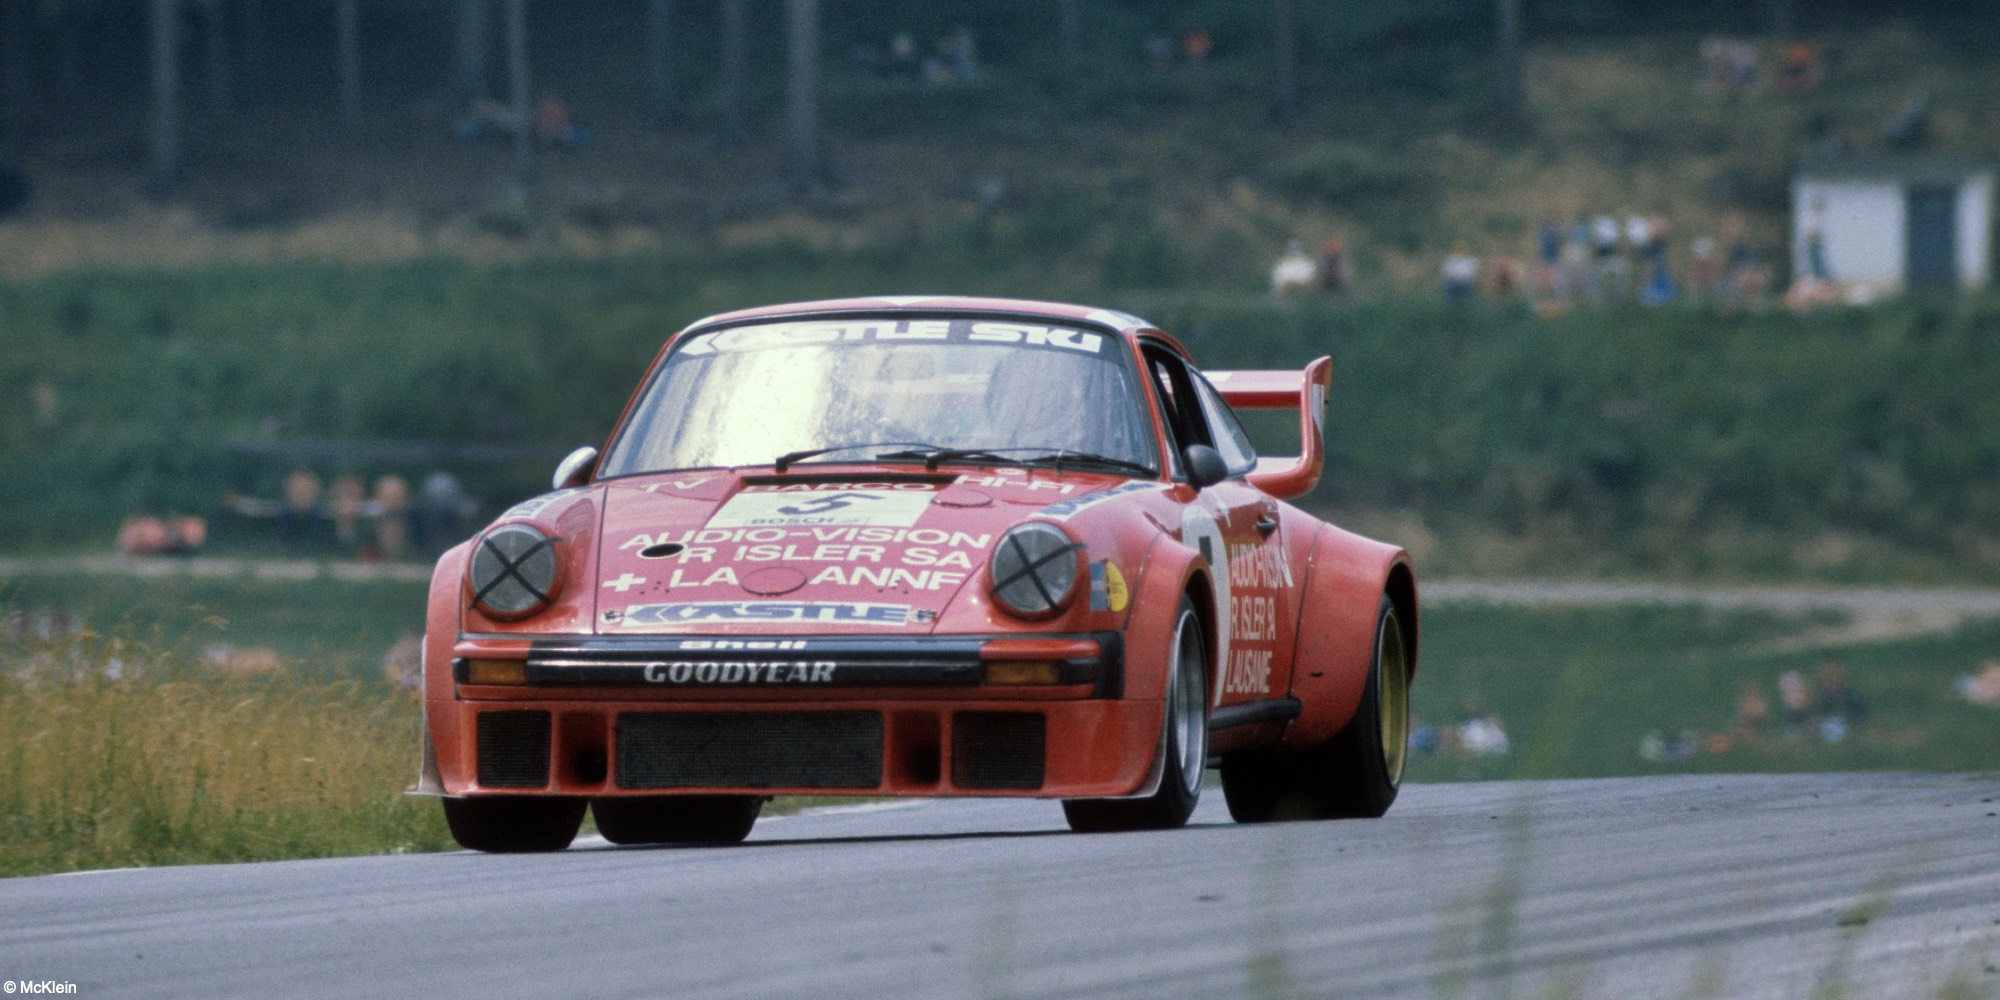 The 2x Le Mans 24 Hours, 3x Daytona 24 Hours, 3x Sebring 12 Hours, Driven by Don Whittington to clinch the 1979 Drivers' World Endurance Championship Title 1976 Porsche 934 Turbo RSR to 935 M16/K3